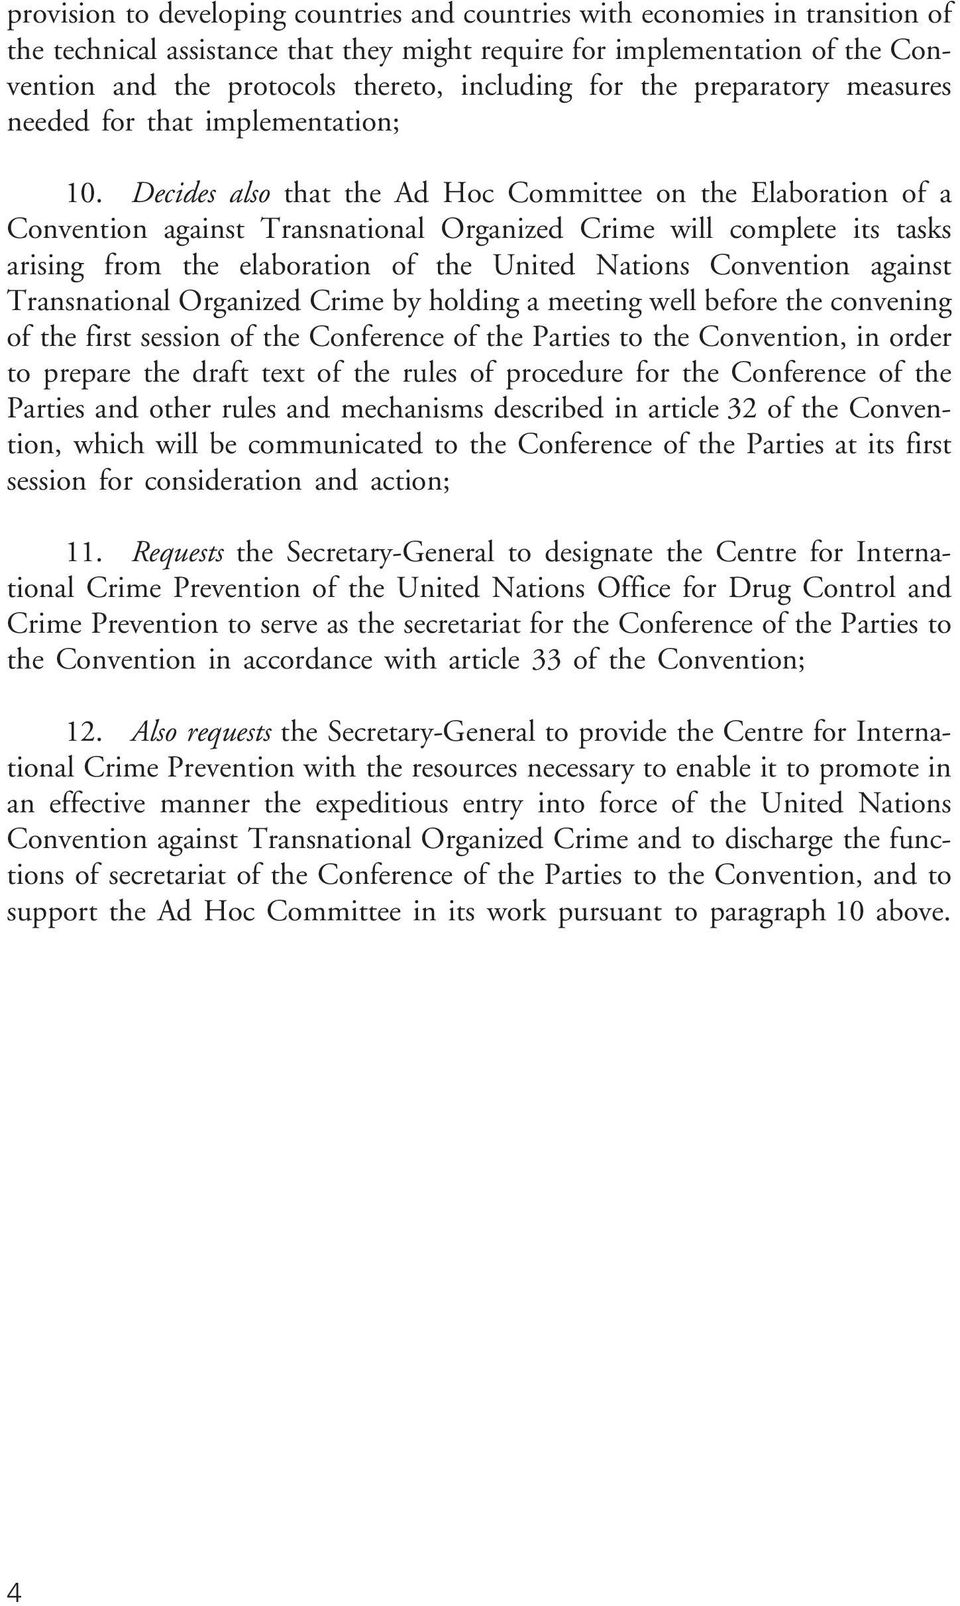 Decides also that the Ad Hoc Committee on the Elaboration of a Convention against Transnational Organized Crime will complete its tasks arising from the elaboration of the United Nations Convention